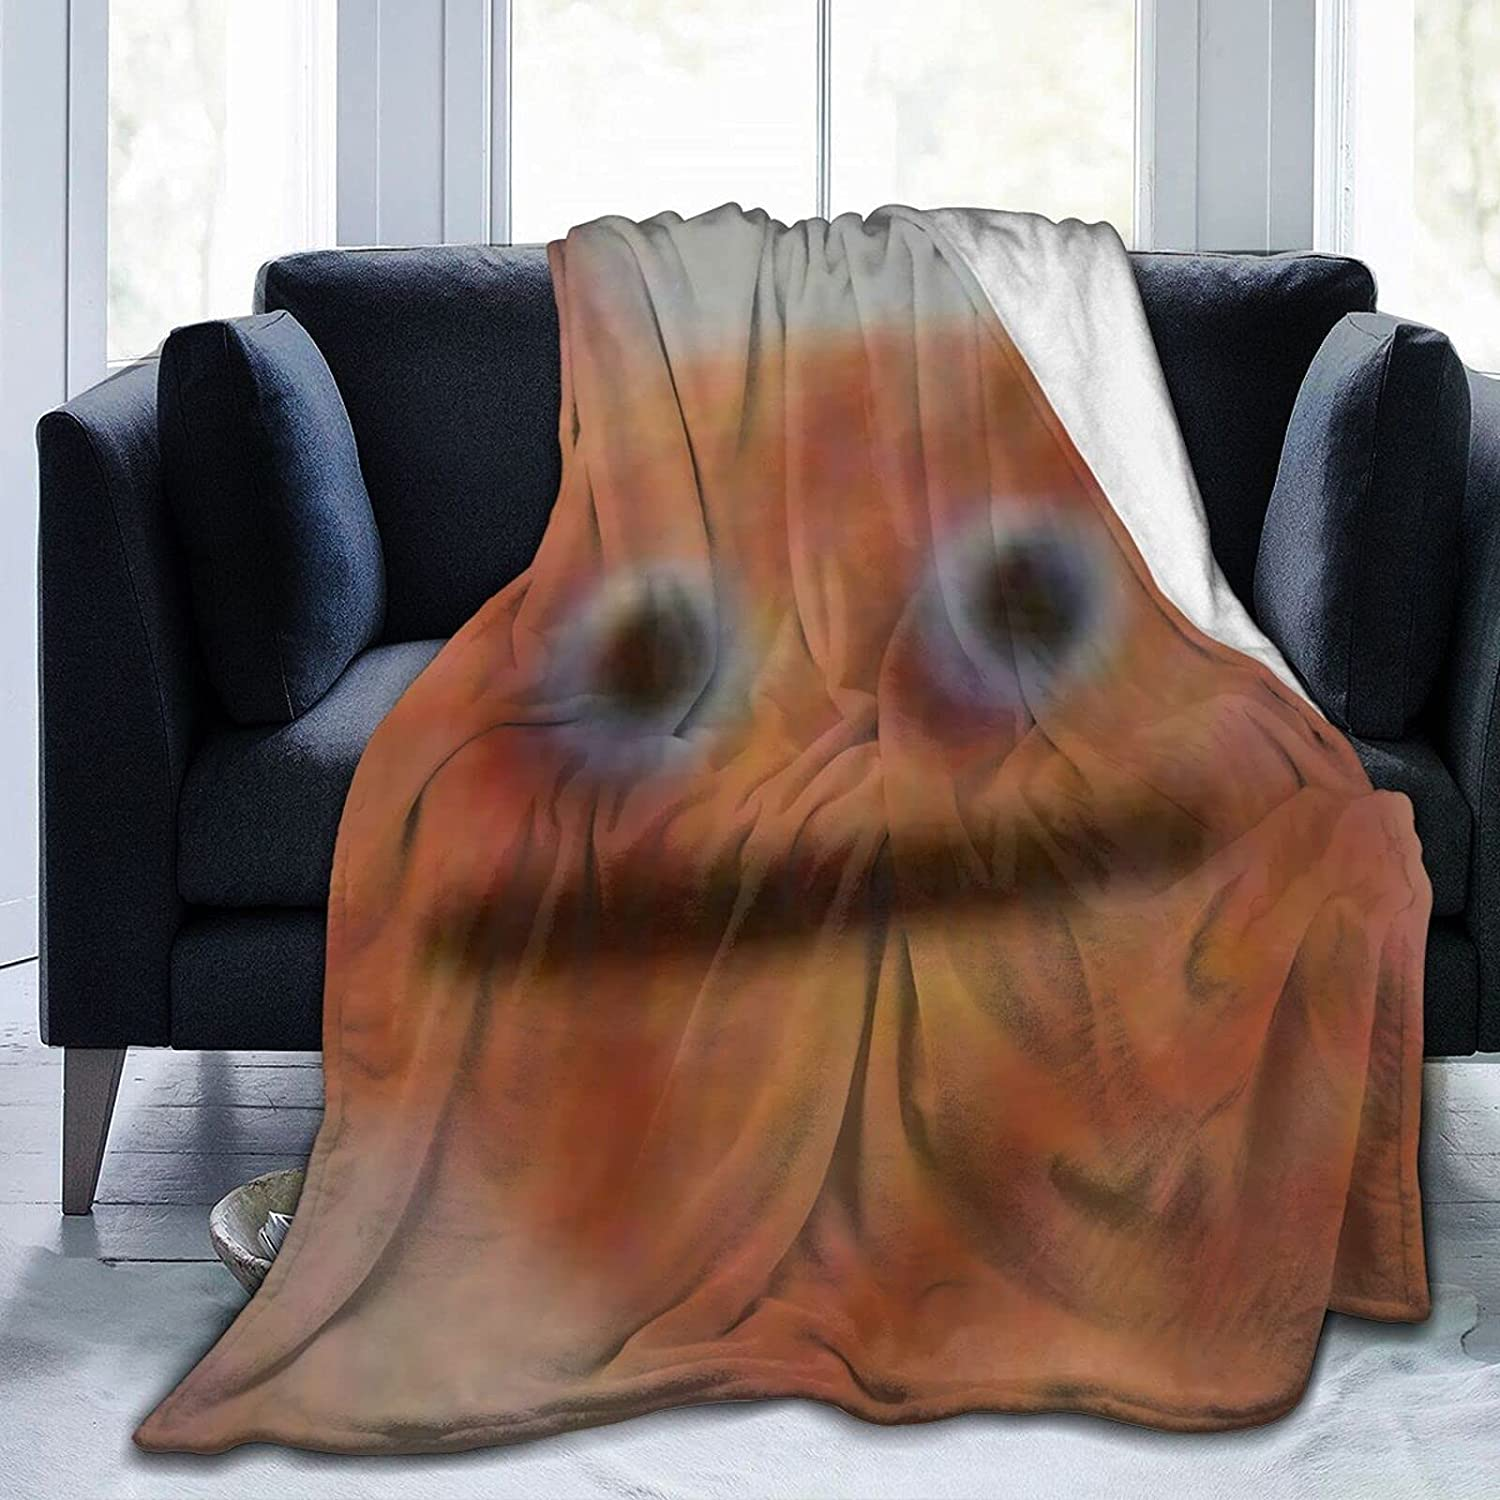 Meme Free shipping on posting reviews The Blanket is Super Soft At the price and Wool Comfortable. Flannel Bla